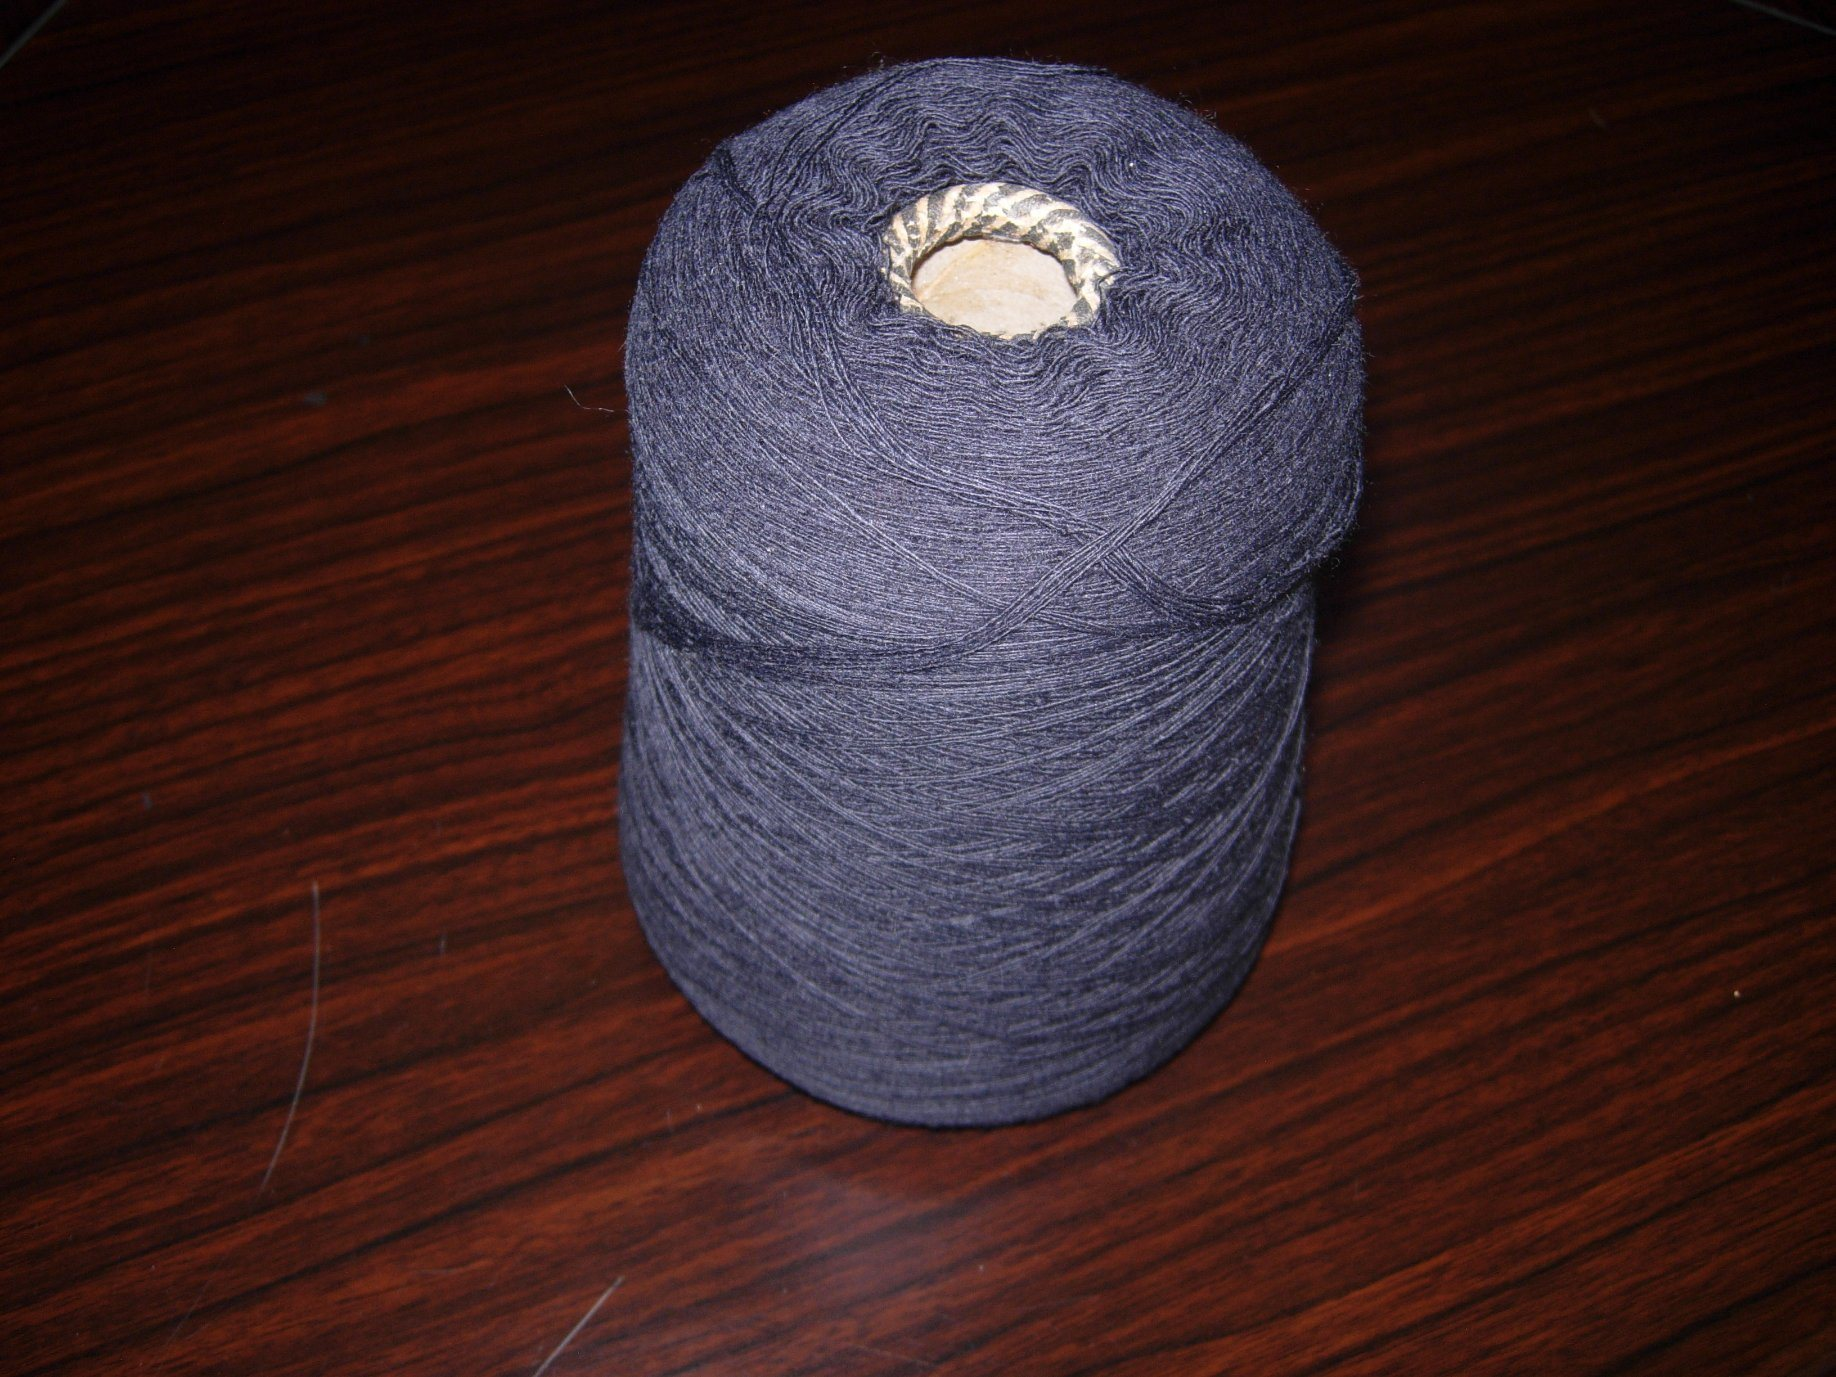 Pure Hand Knitting Basolan Wool Yarn